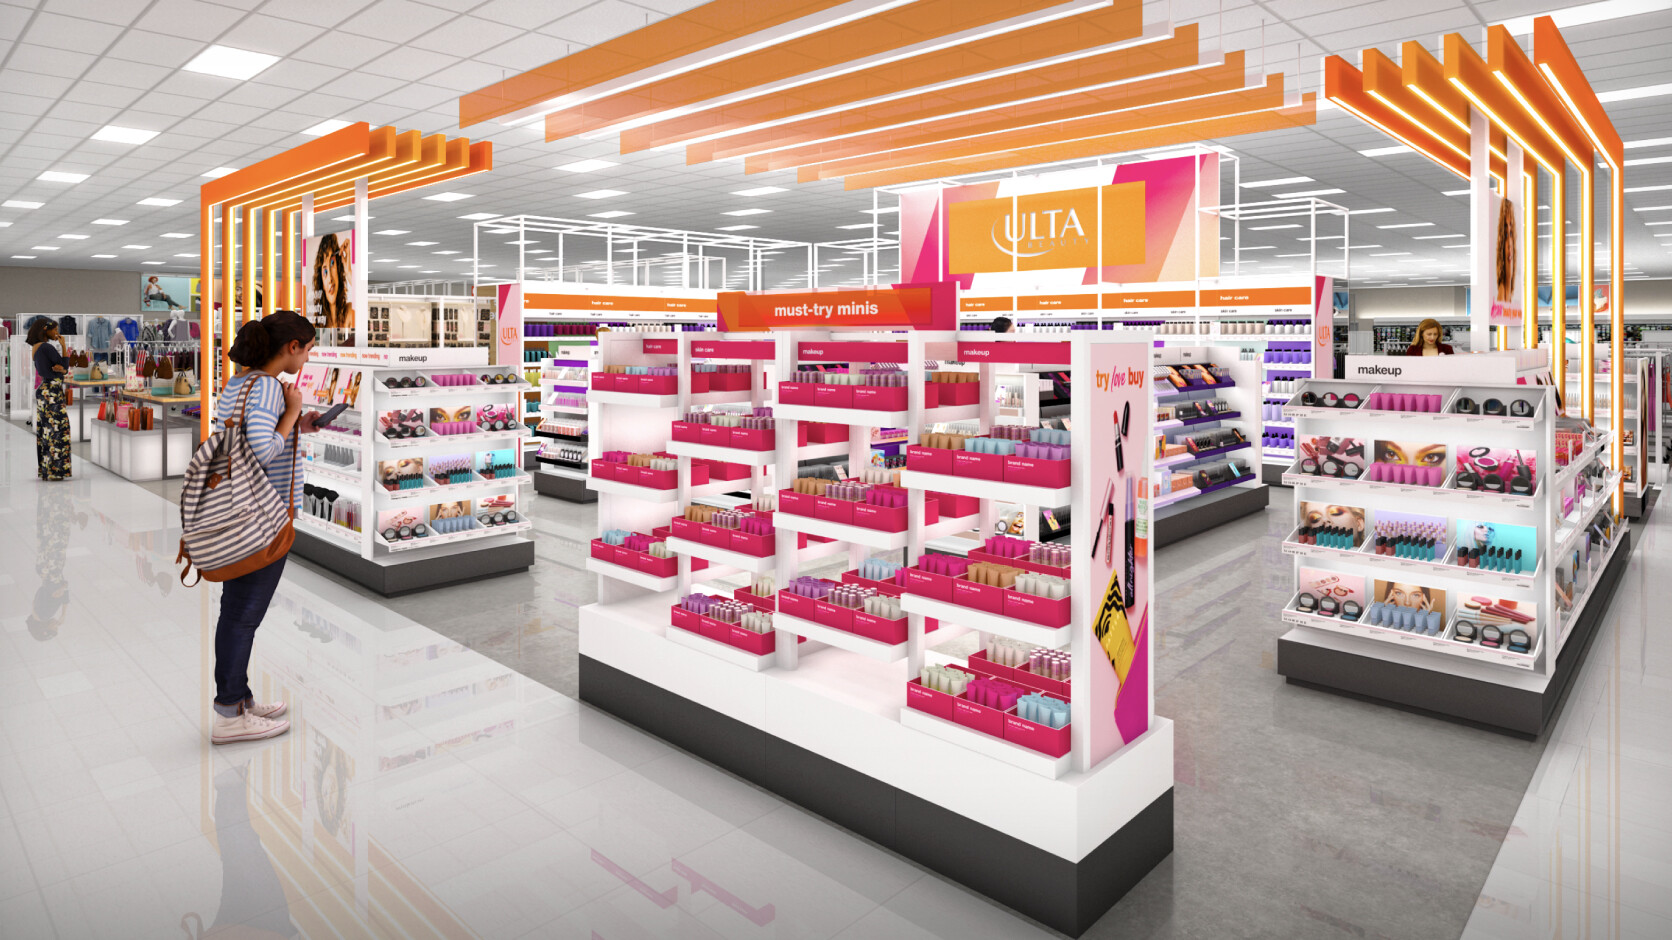 You can soon buy Clinique and MAC makeup at some Target stores